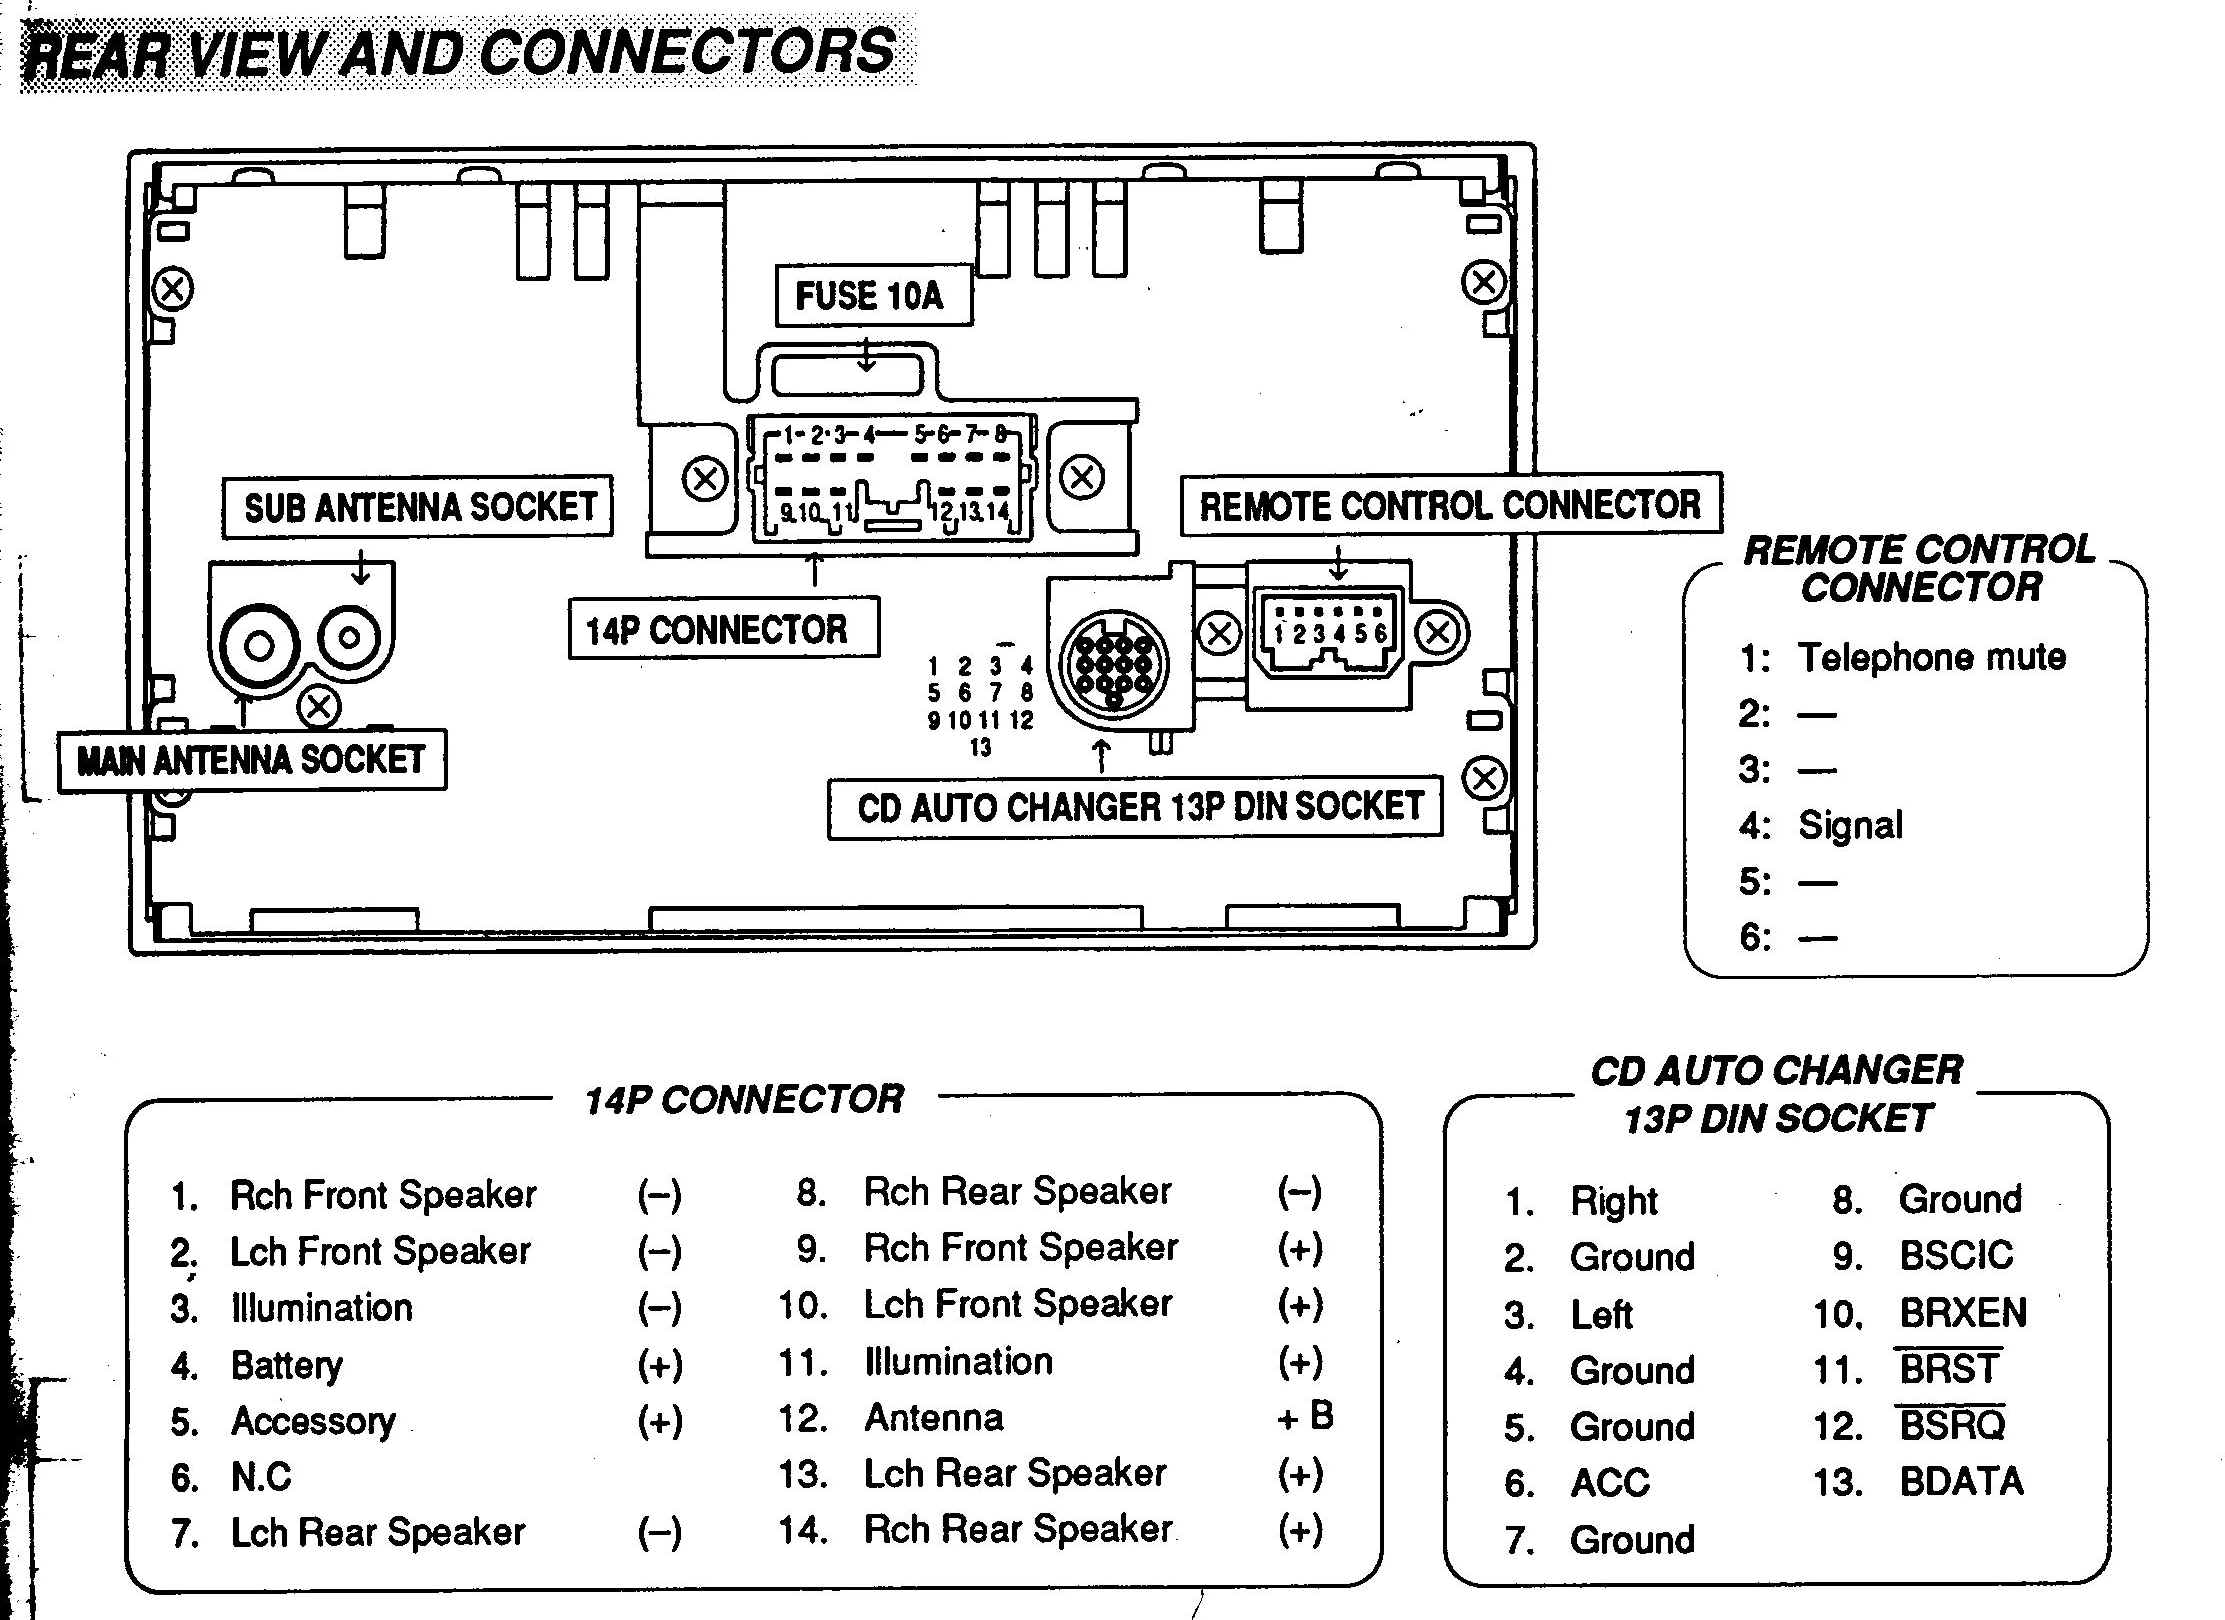 WireHarnessMit121003 mitsubishi radio wiring diagram mitsubishi eclipse wiring diagram mitsubishi eclipse wiring diagram at readyjetset.co